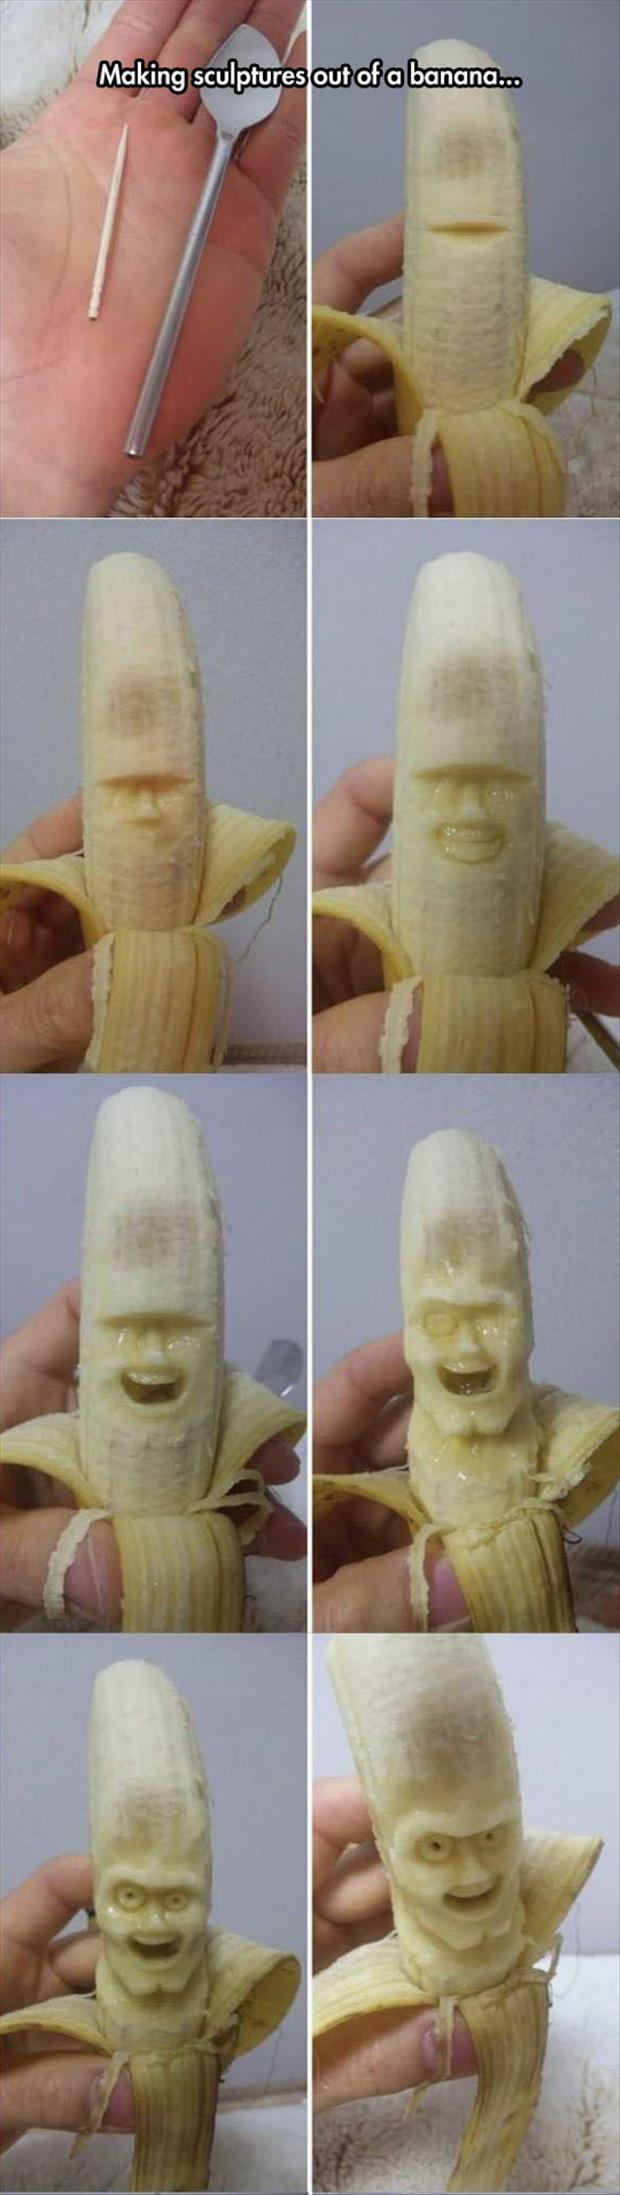 how to make a banana carving